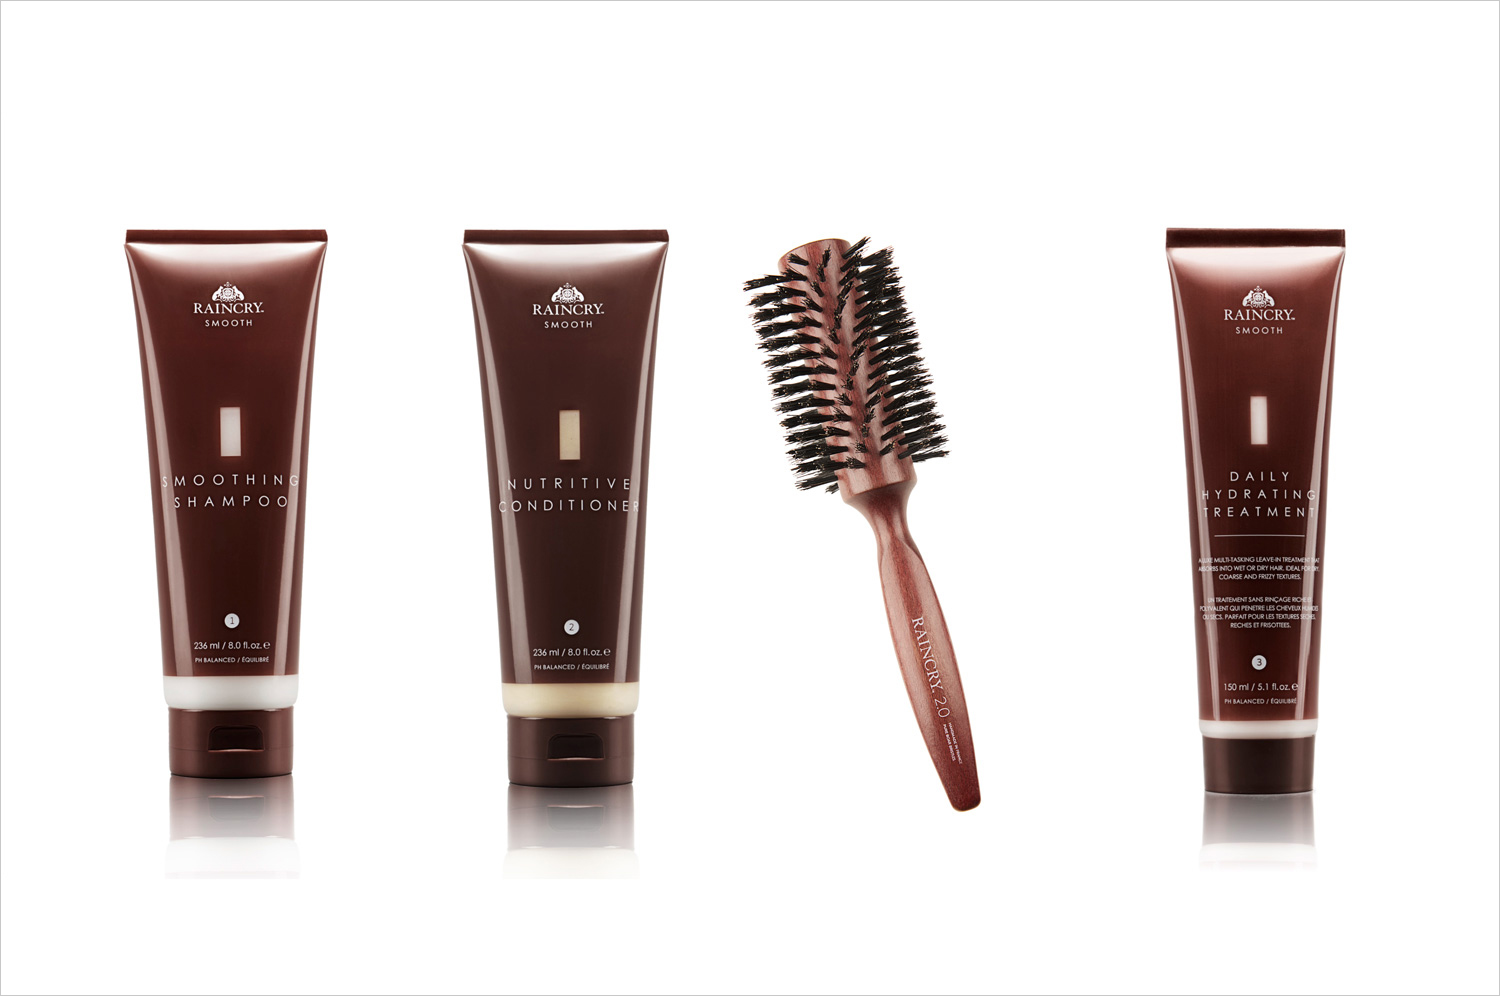 Raincry smoothing shampoo conditioner brush and daily treatment fall wedding beauty products